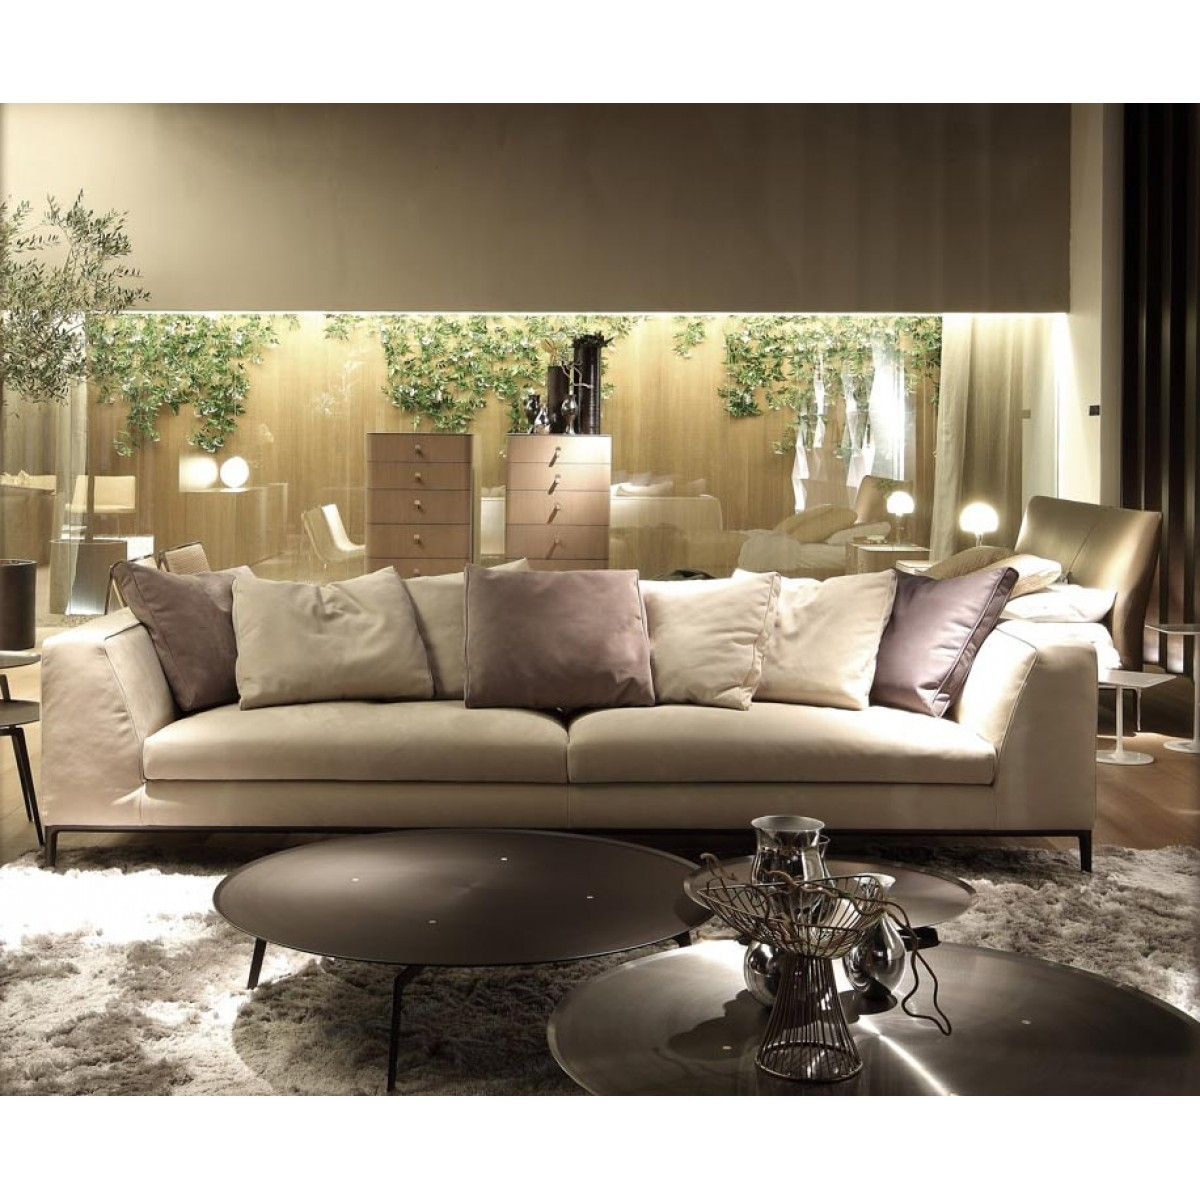 Cloud Extra Large Sofa | Large Sofa, Cloud And Interior Shop Intended For Extra Large Sofas (View 2 of 10)